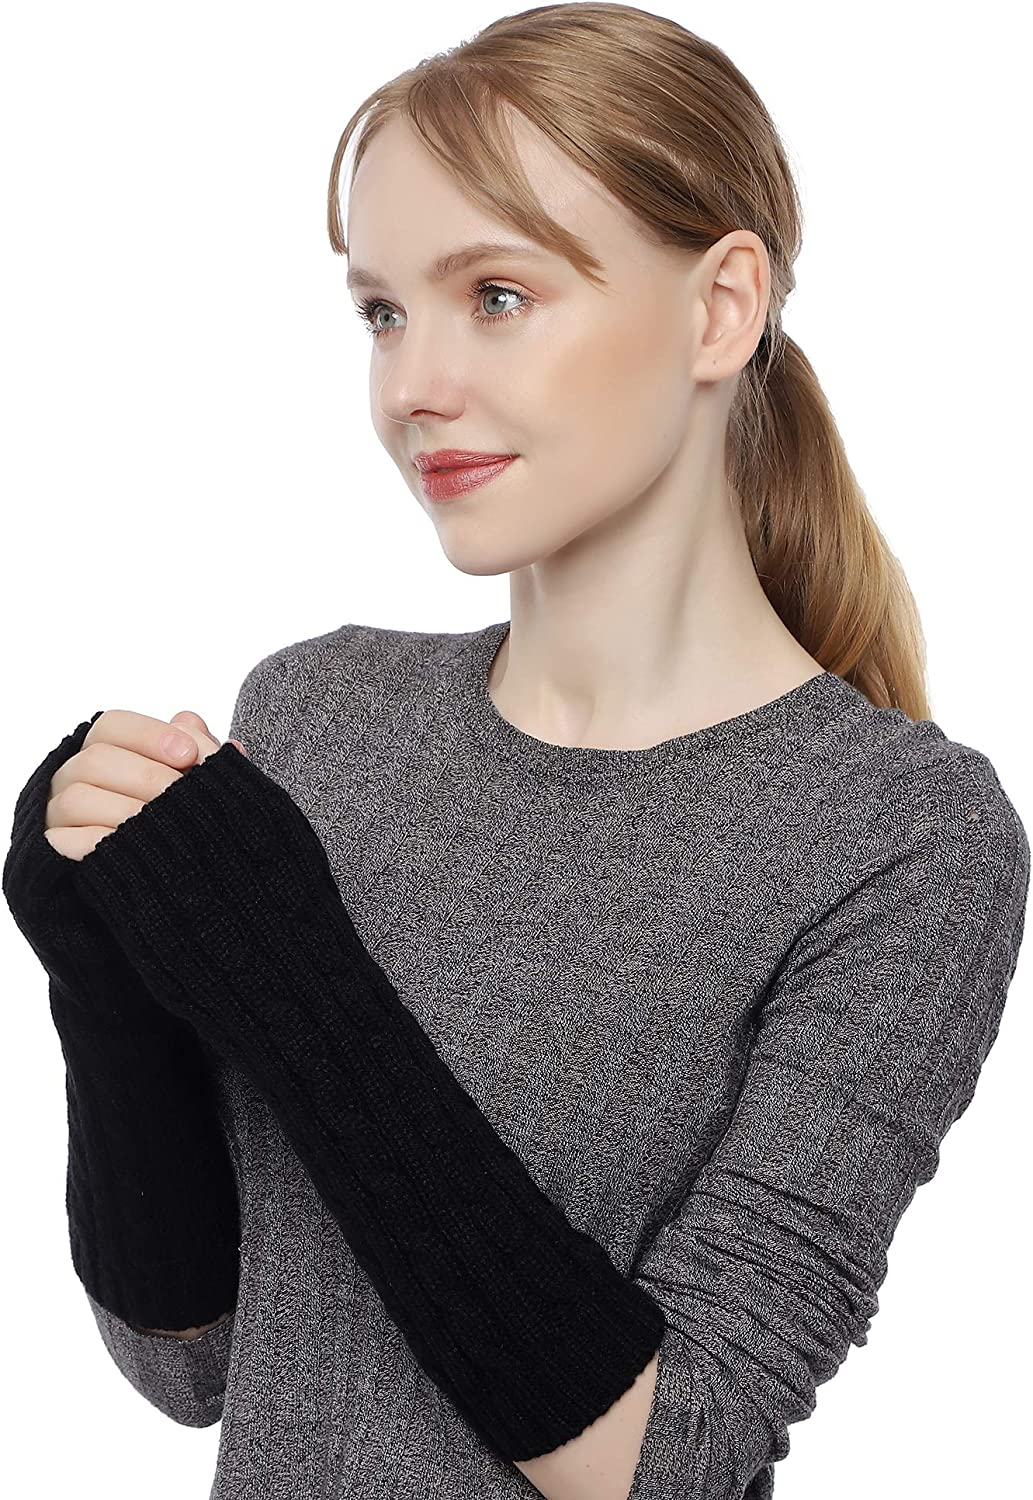 Flammi Women's Cable Knit Arm Warmers Fingerless Gloves Thumb Hole Gloves Mittens